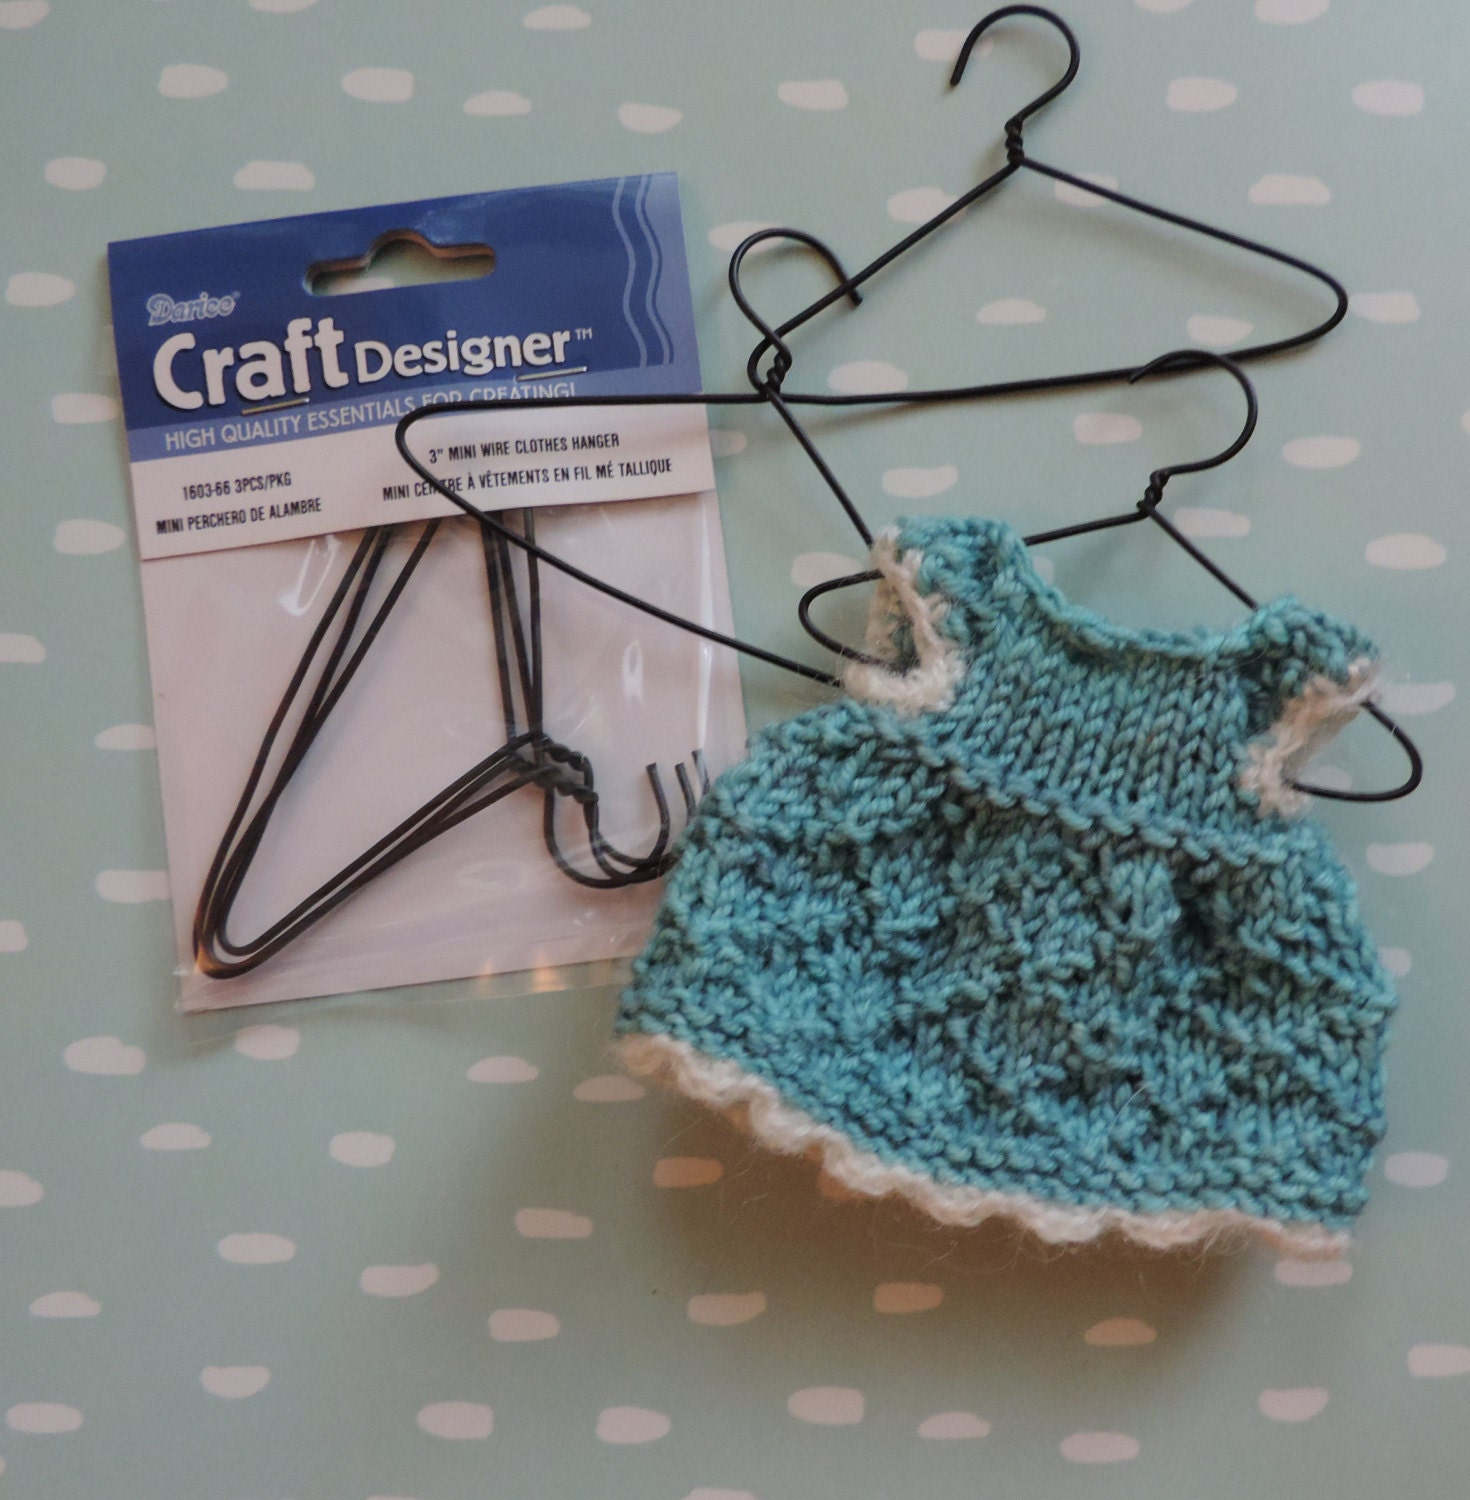 3 Inch Mini Wire Hangers, Packaged Set of 3, Great for Doll Clothes ...